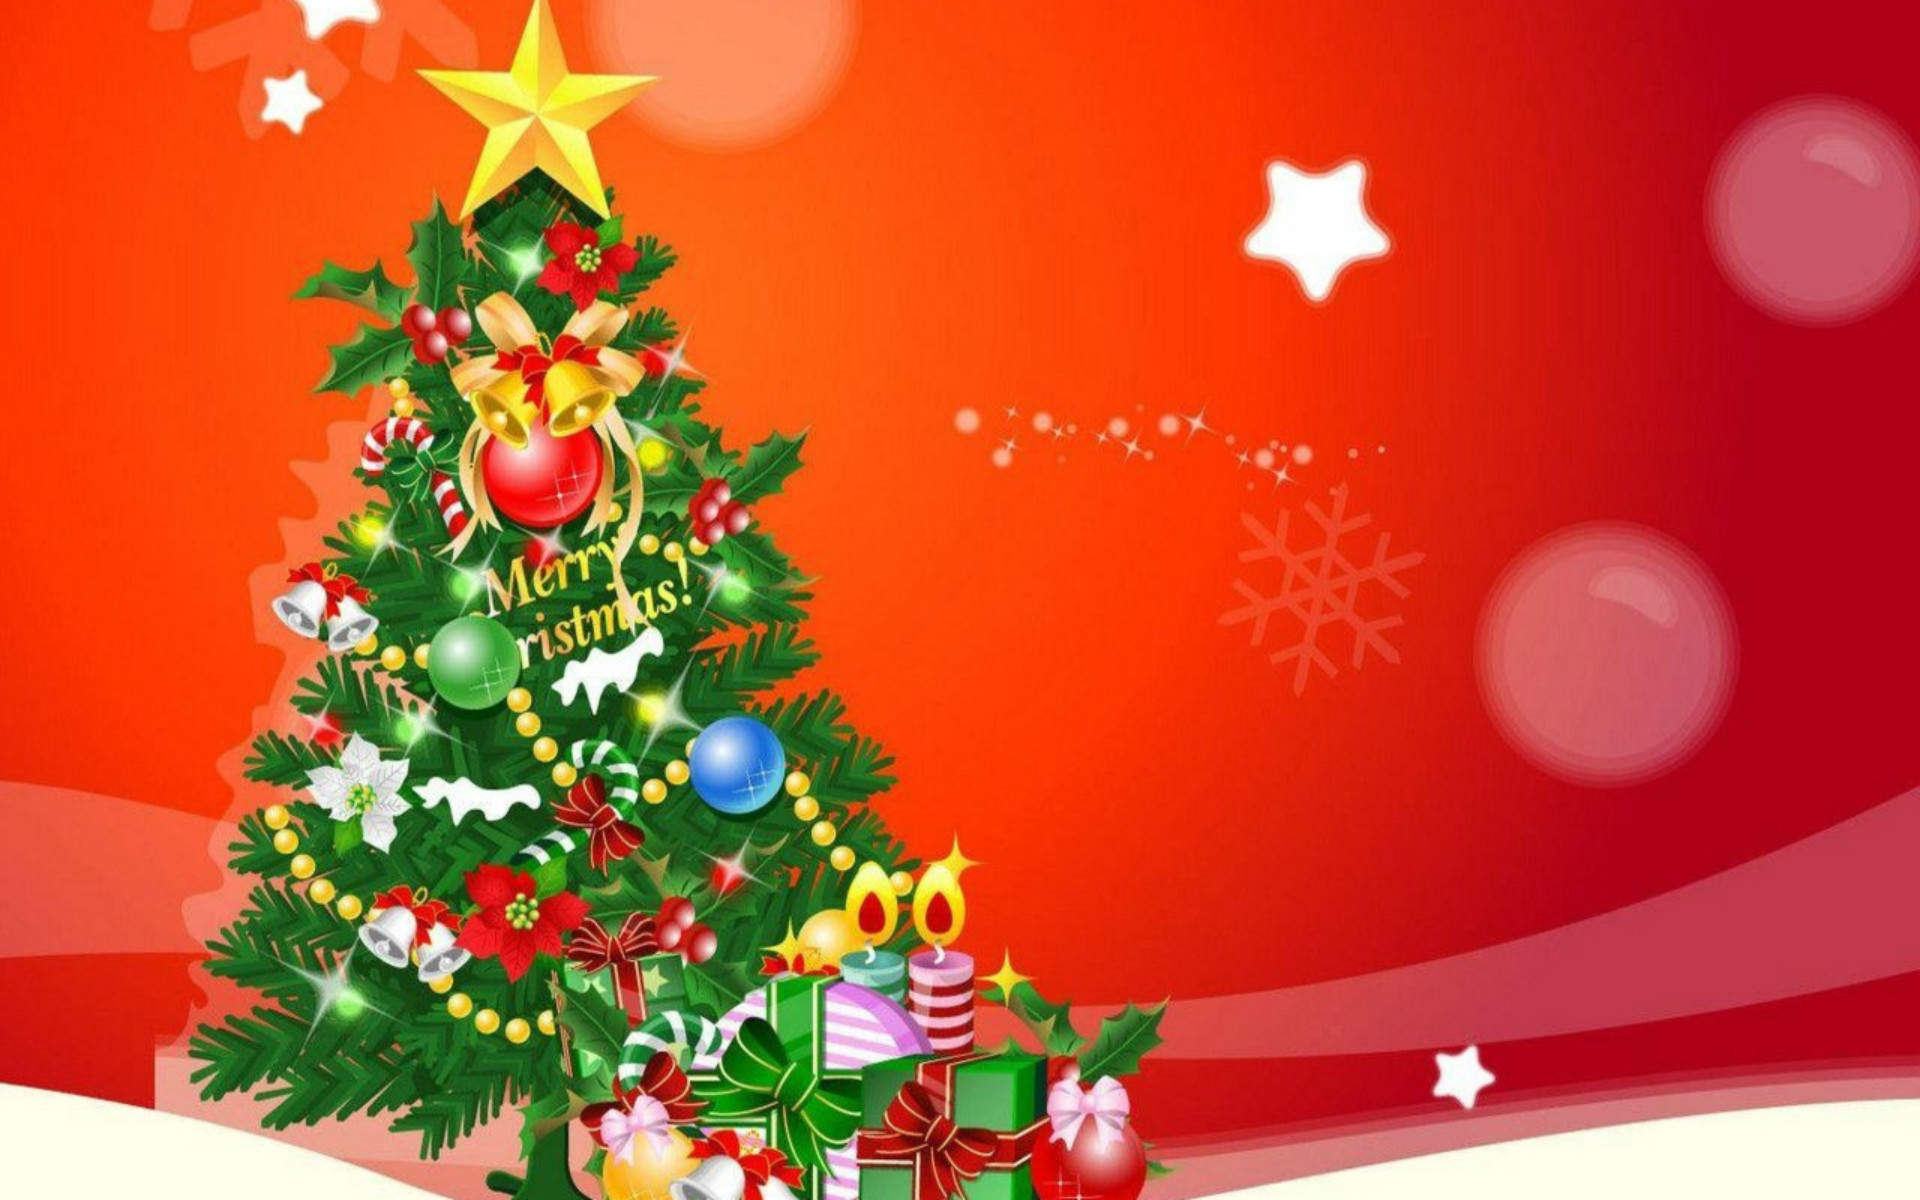 35 351457 wallpaper holiday merry christmas background hd